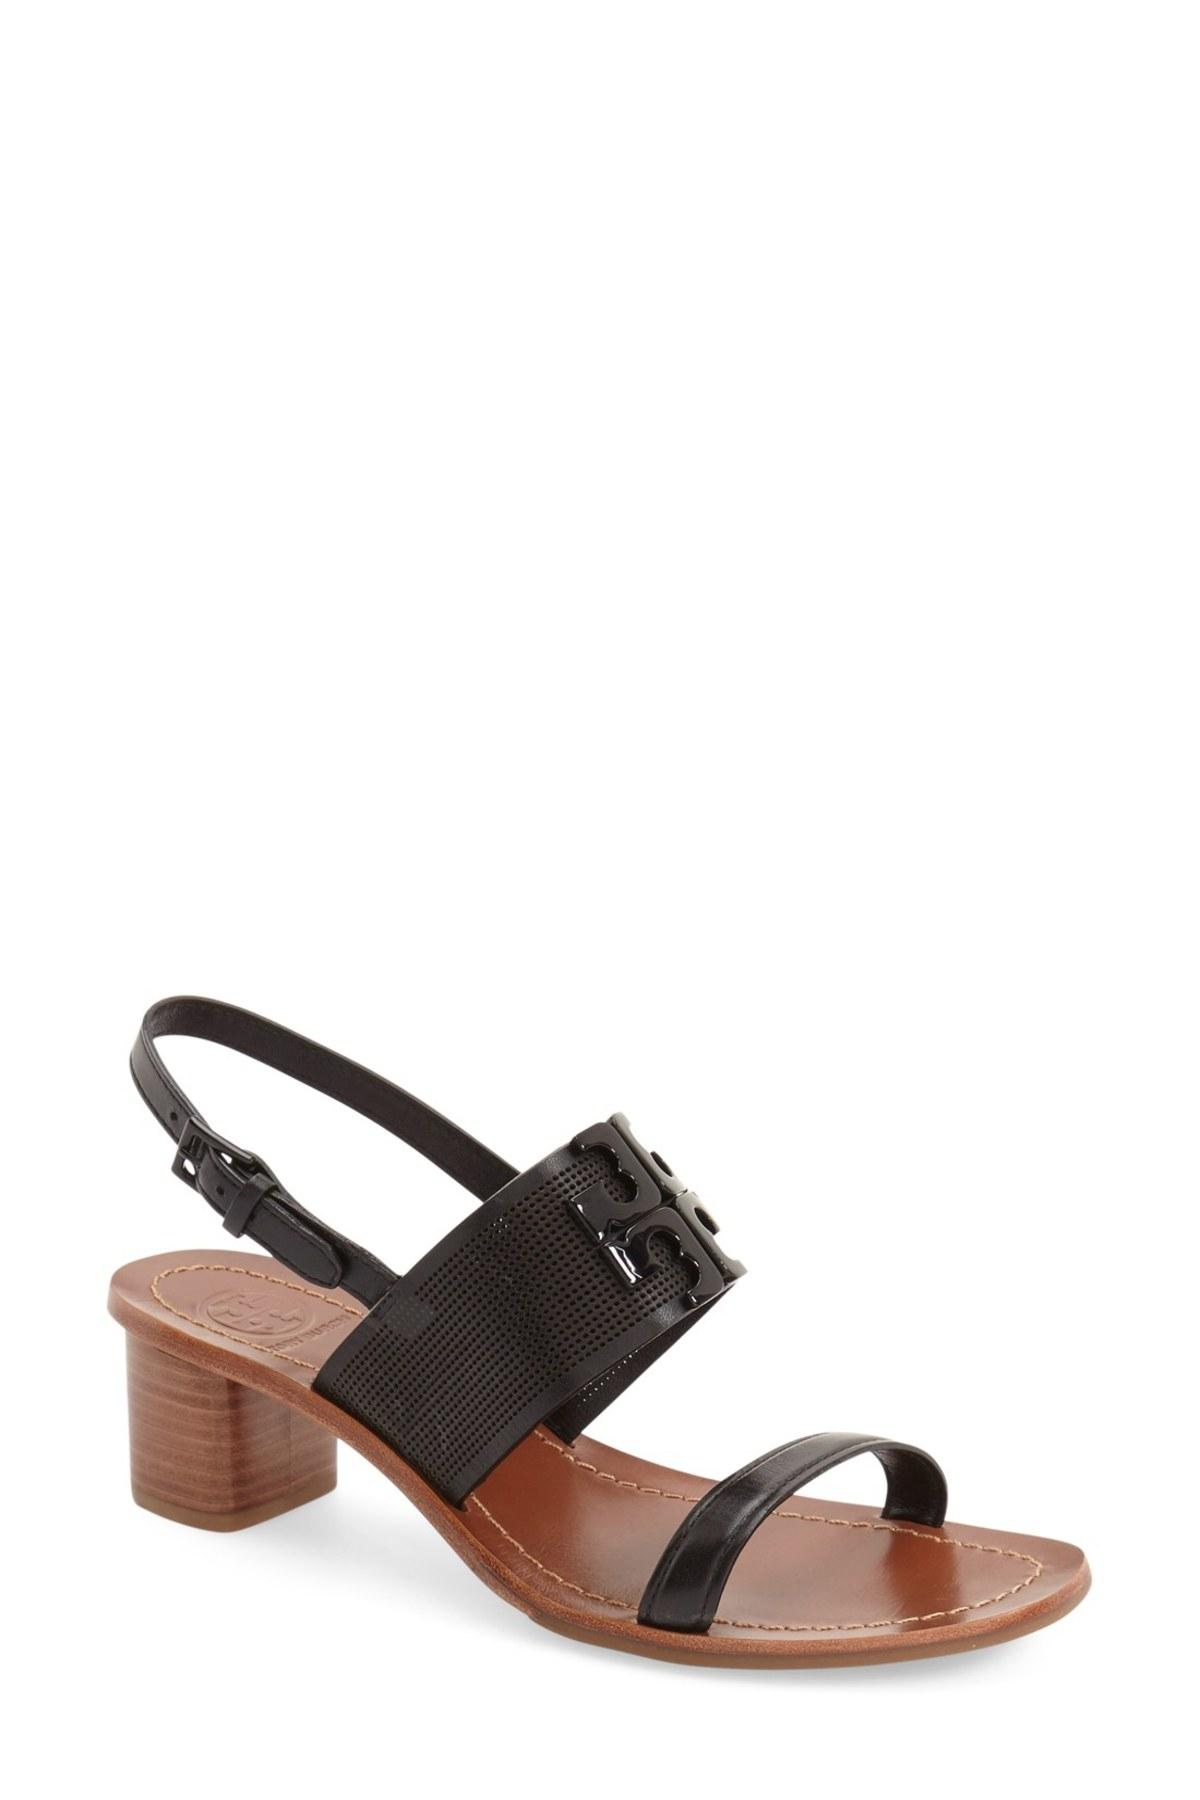 Tory Burch Mesh Leather Brown Strappy Black Sandals